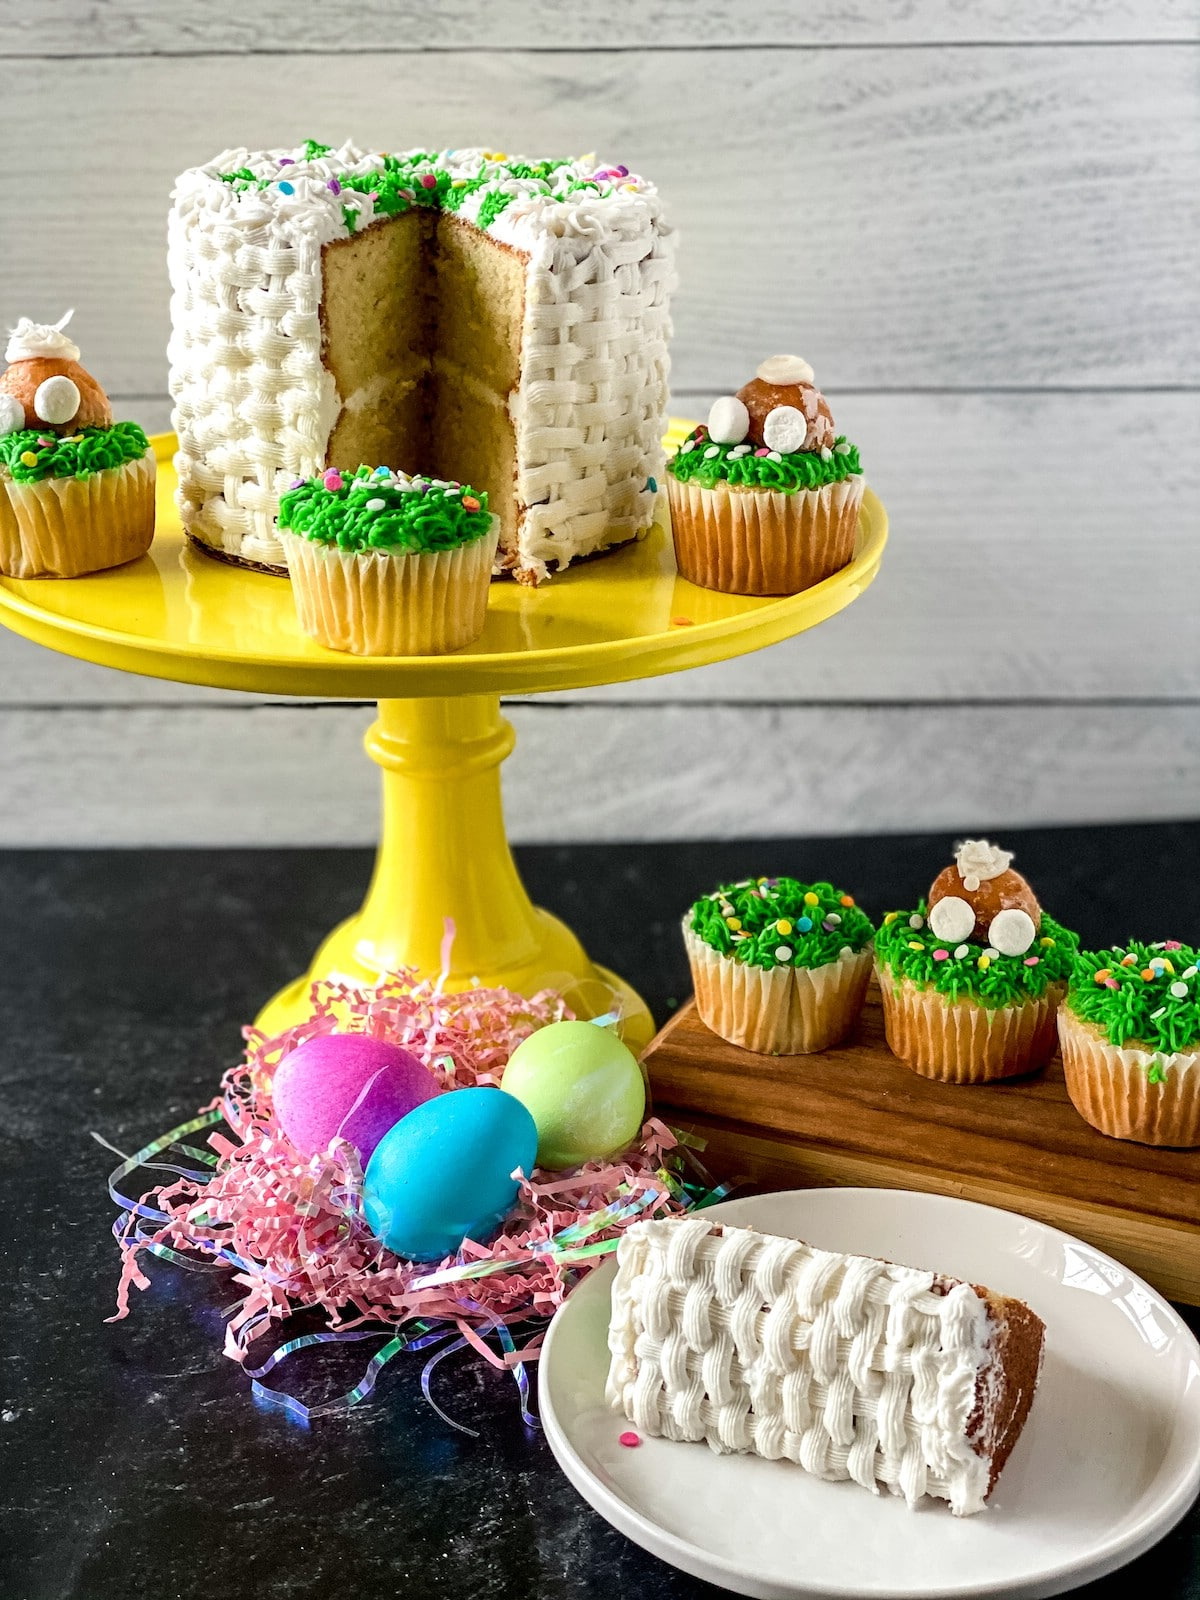 Easter cake on yellow cake stand with slice on white plate